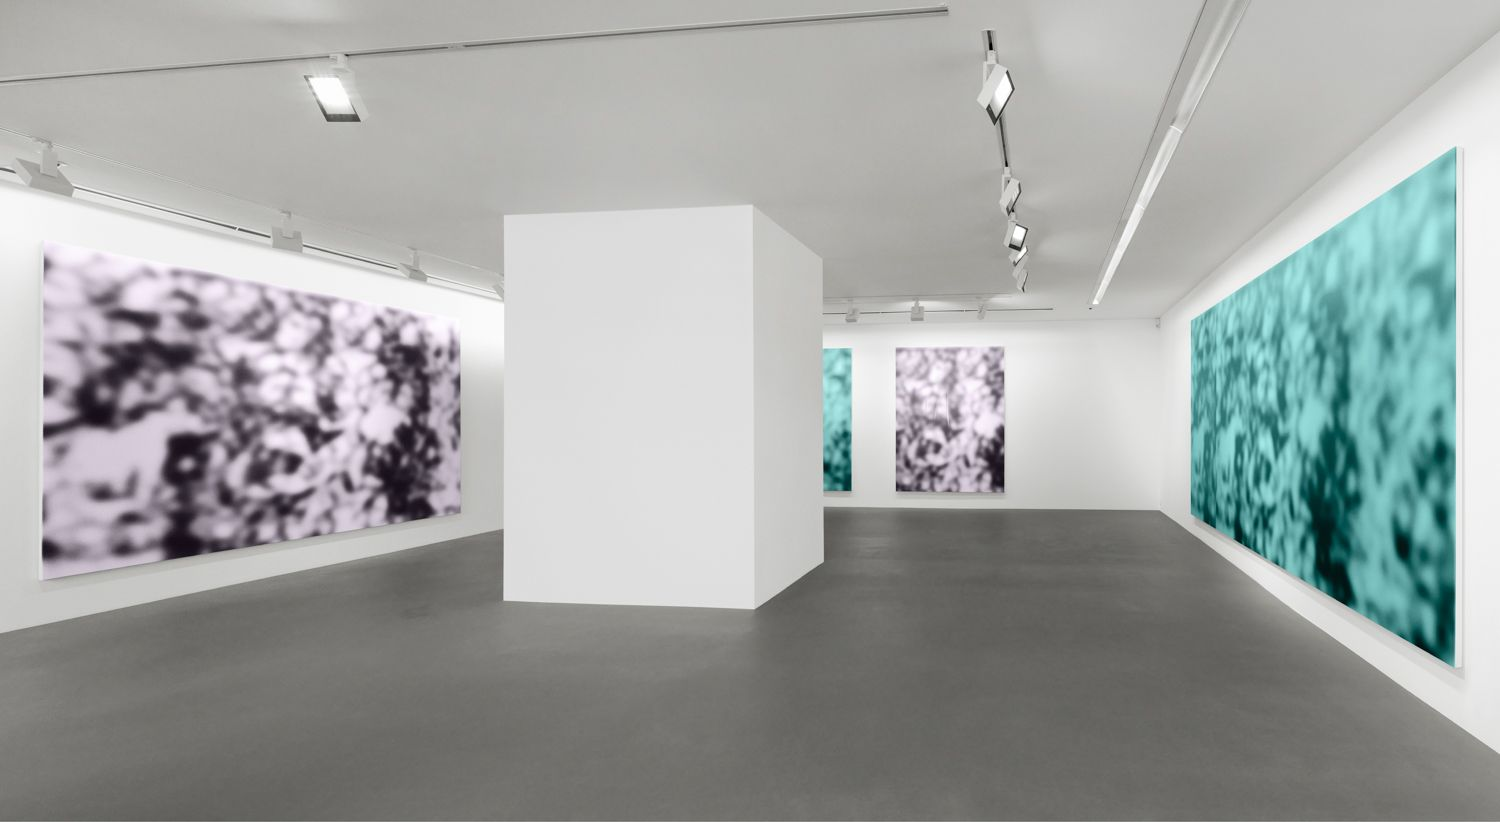 Installation view, Jeff Elrod, Figment, Vito Schnabel Gallery, St. Moritz, 2016